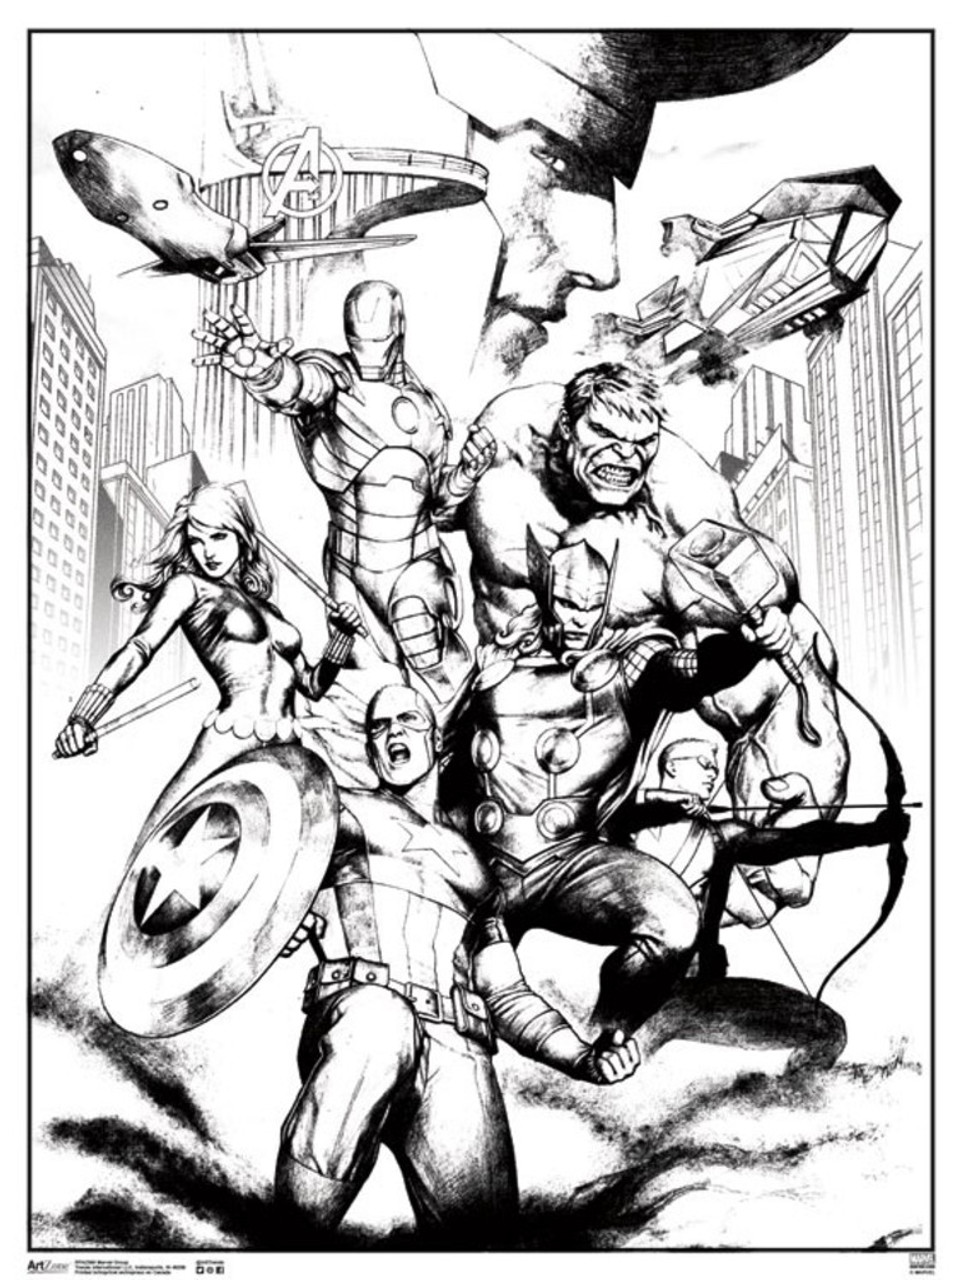 Marvel Avengers Group Comic Books Coloring Poster 18x24 inch